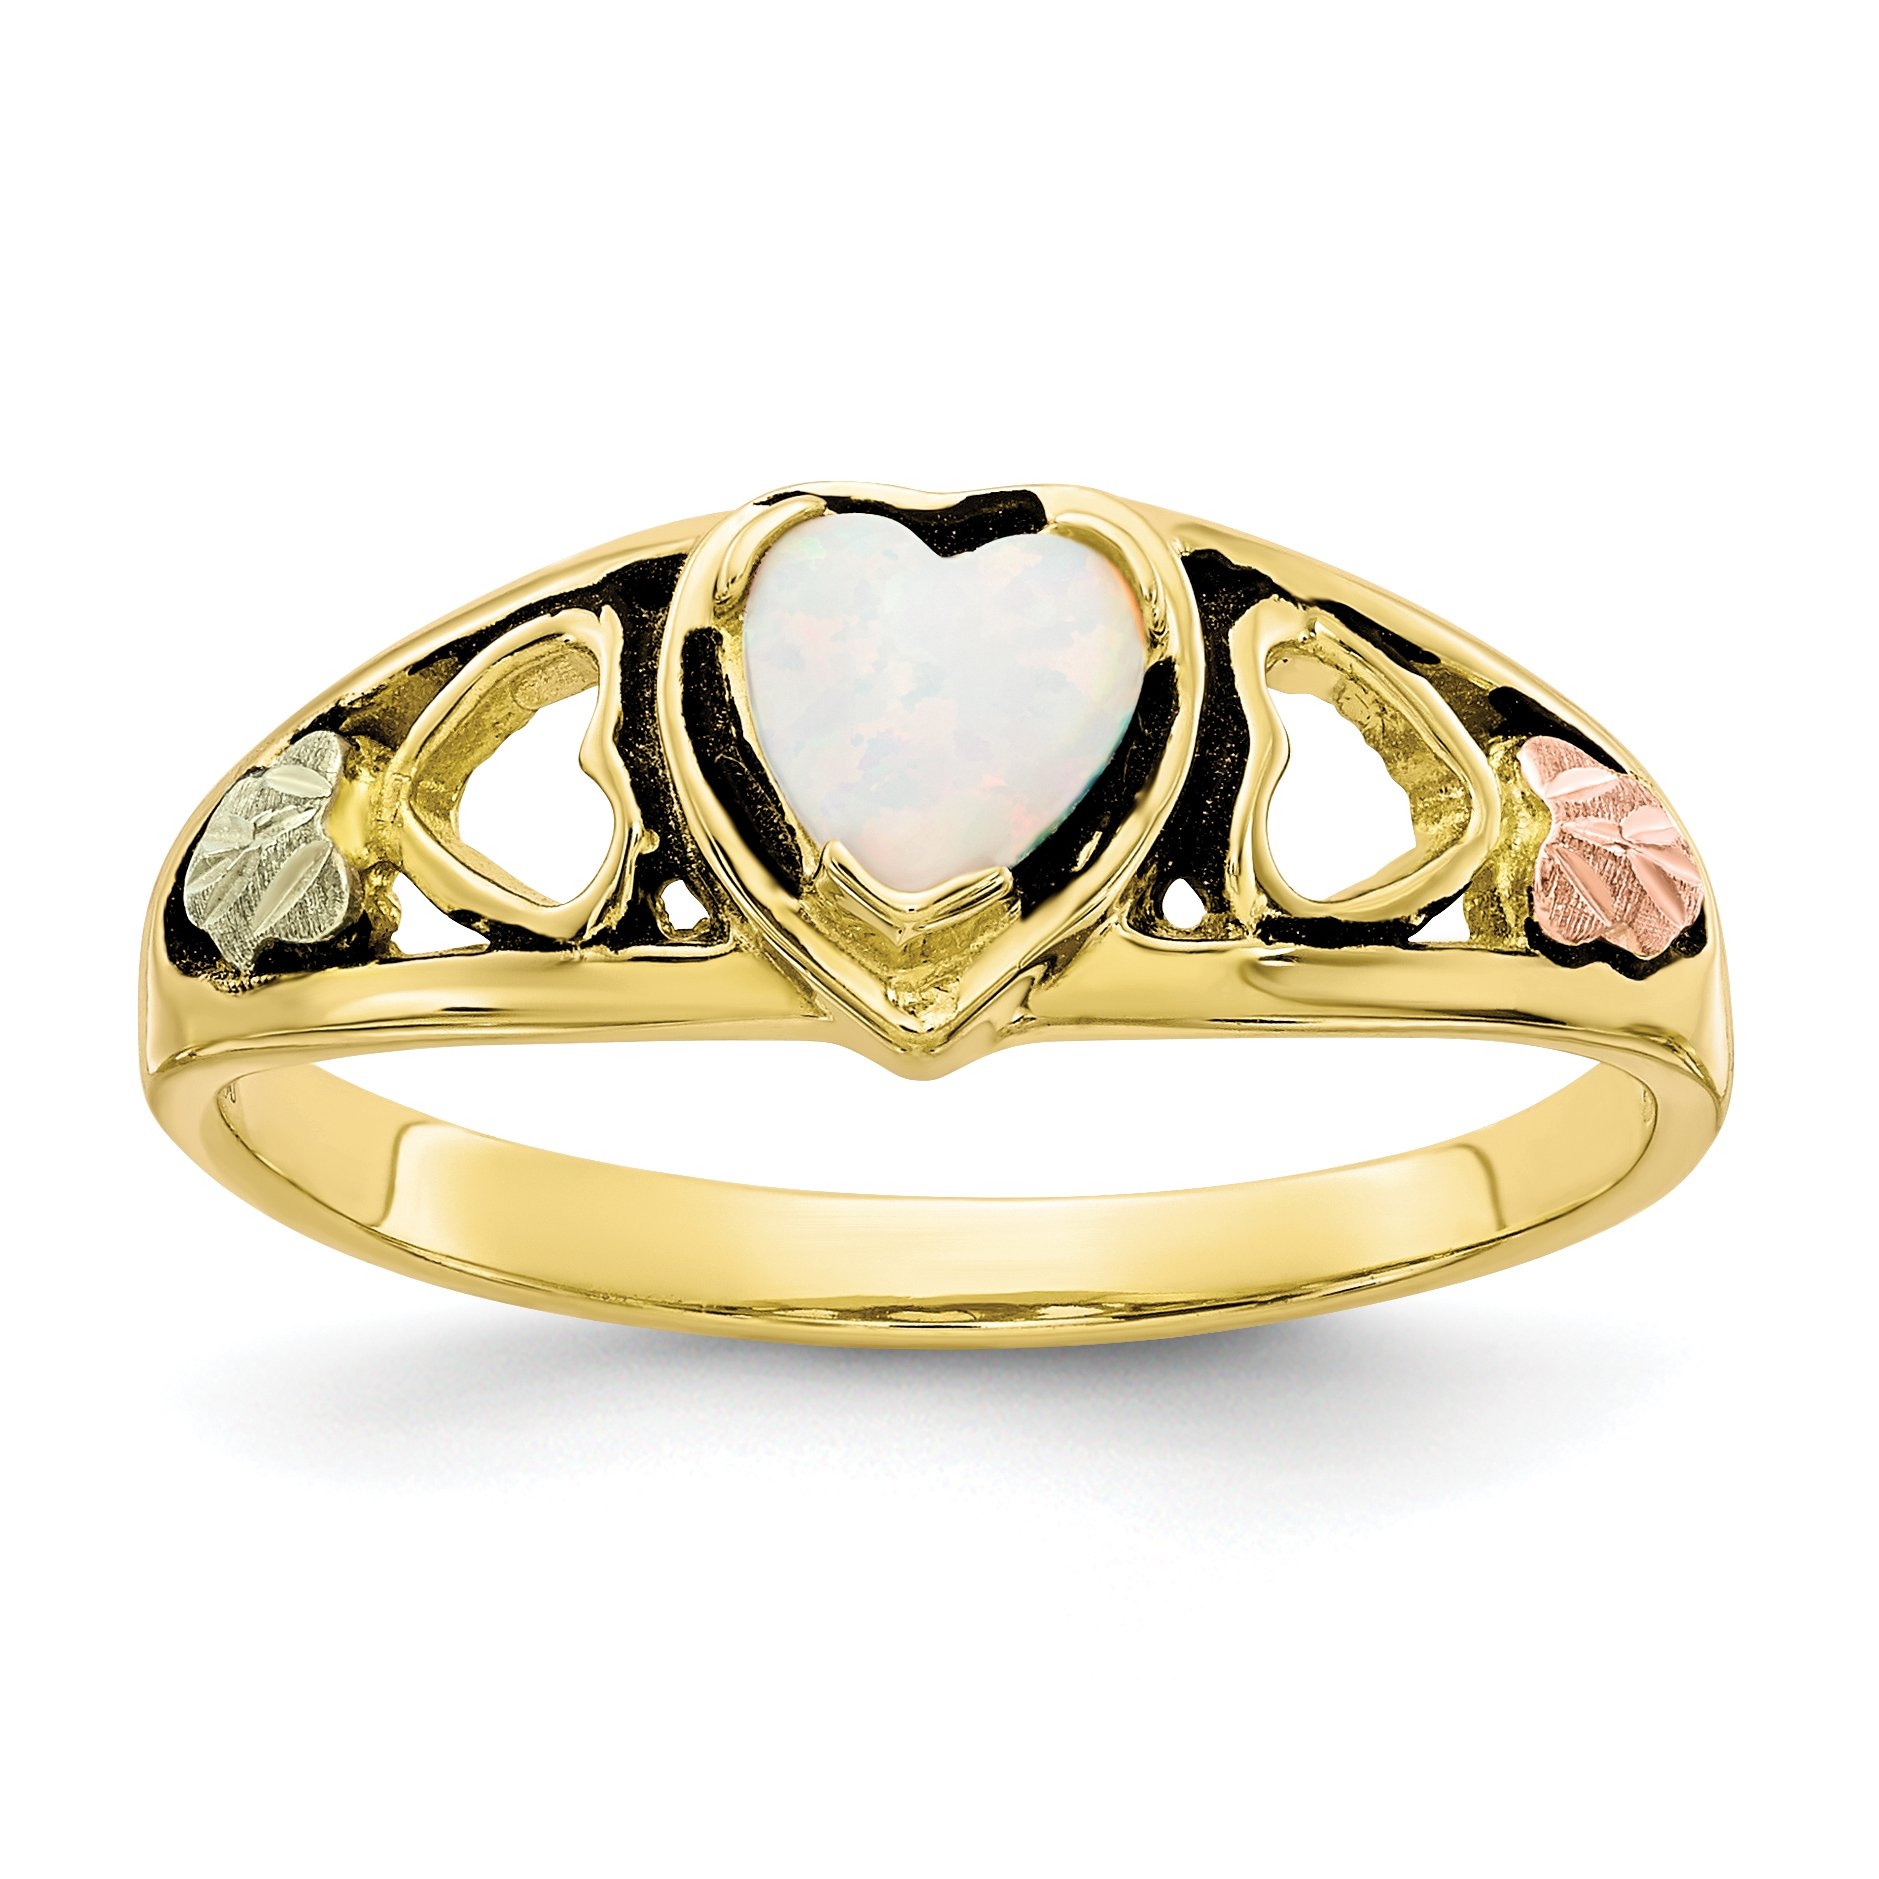 ICE CARATS 10k Tri Color Black Hills Gold Created Opal Heart Band Ring Size 7.00 S/love Fine Jewelry Gift Set For Women Heart